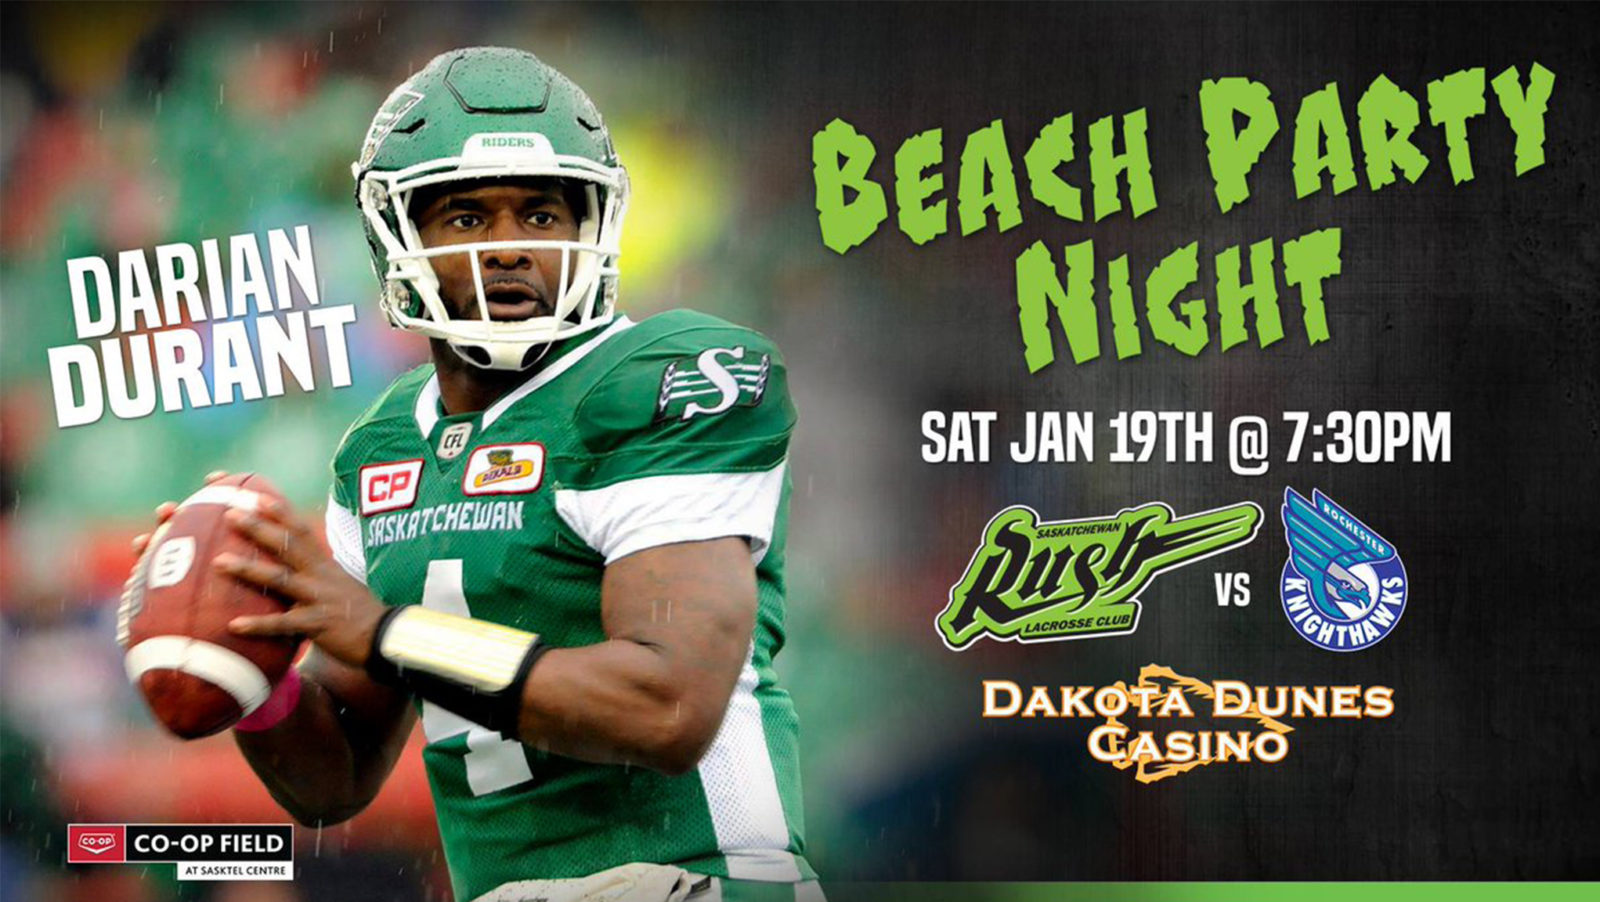 Lacrosse team to host Darian Durant Night